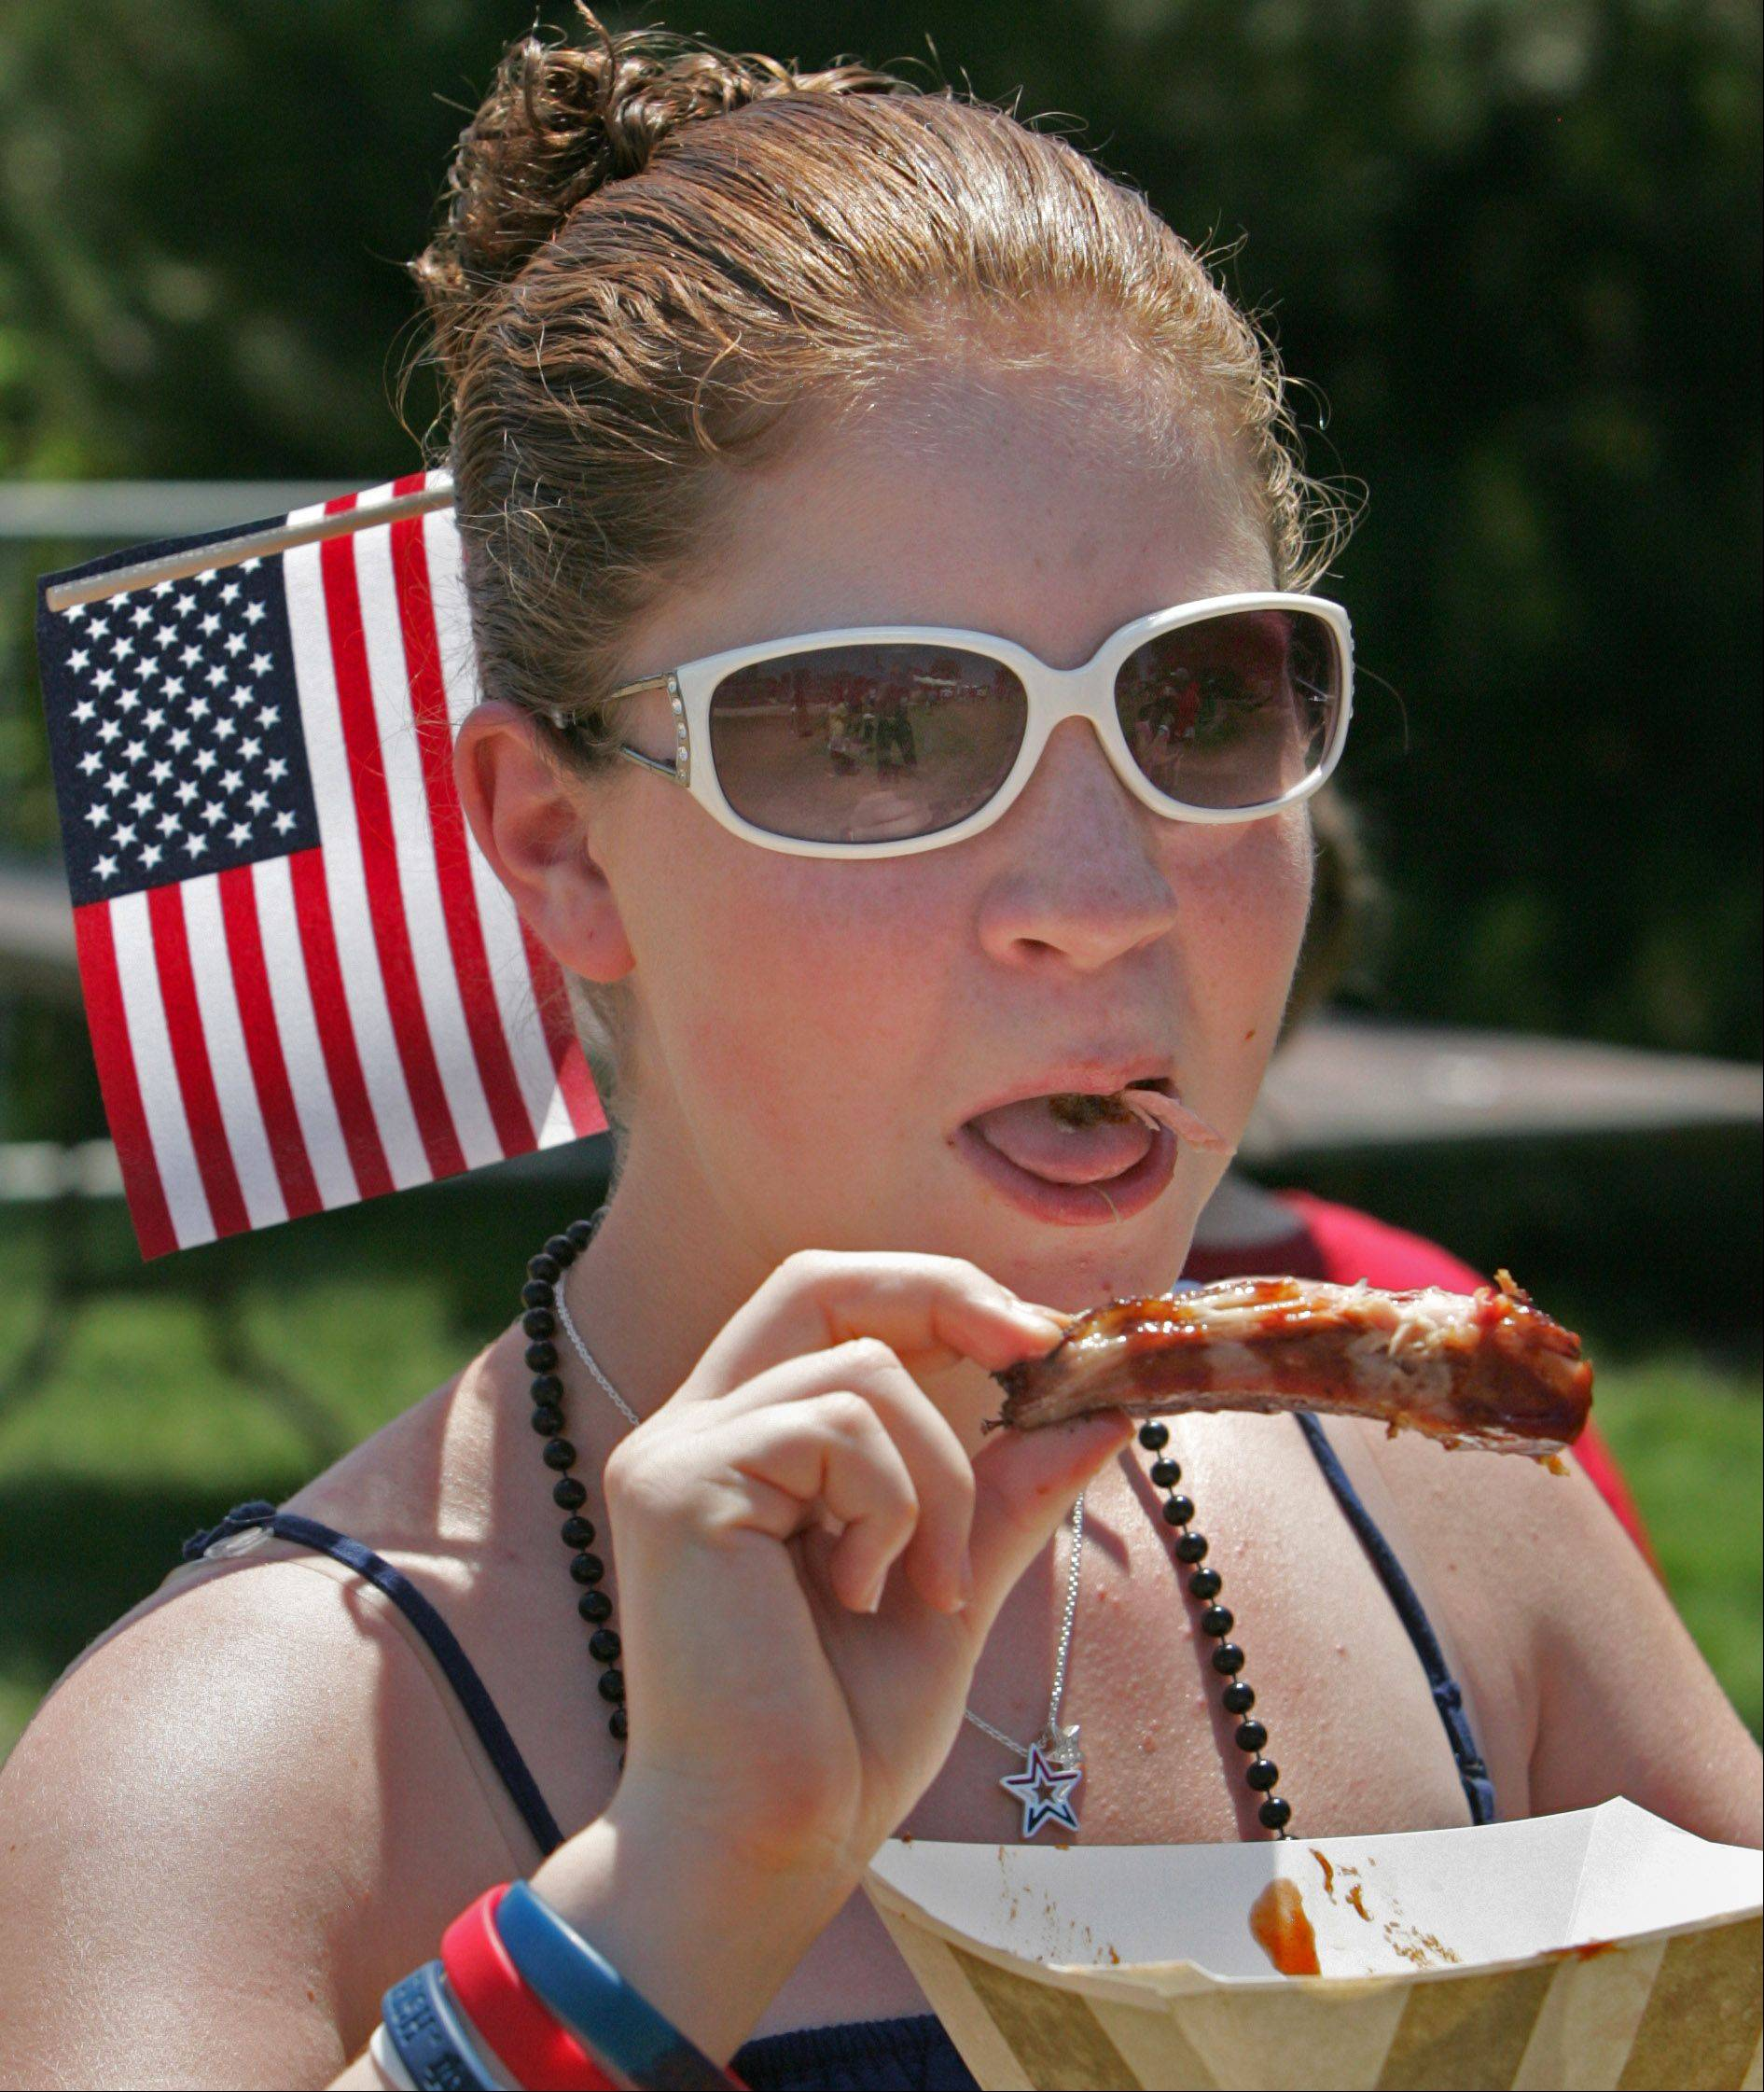 Carolyn Angiollo, 14, of Palatine enjoys eating a rib during the final day of Naperville's Ribfest.